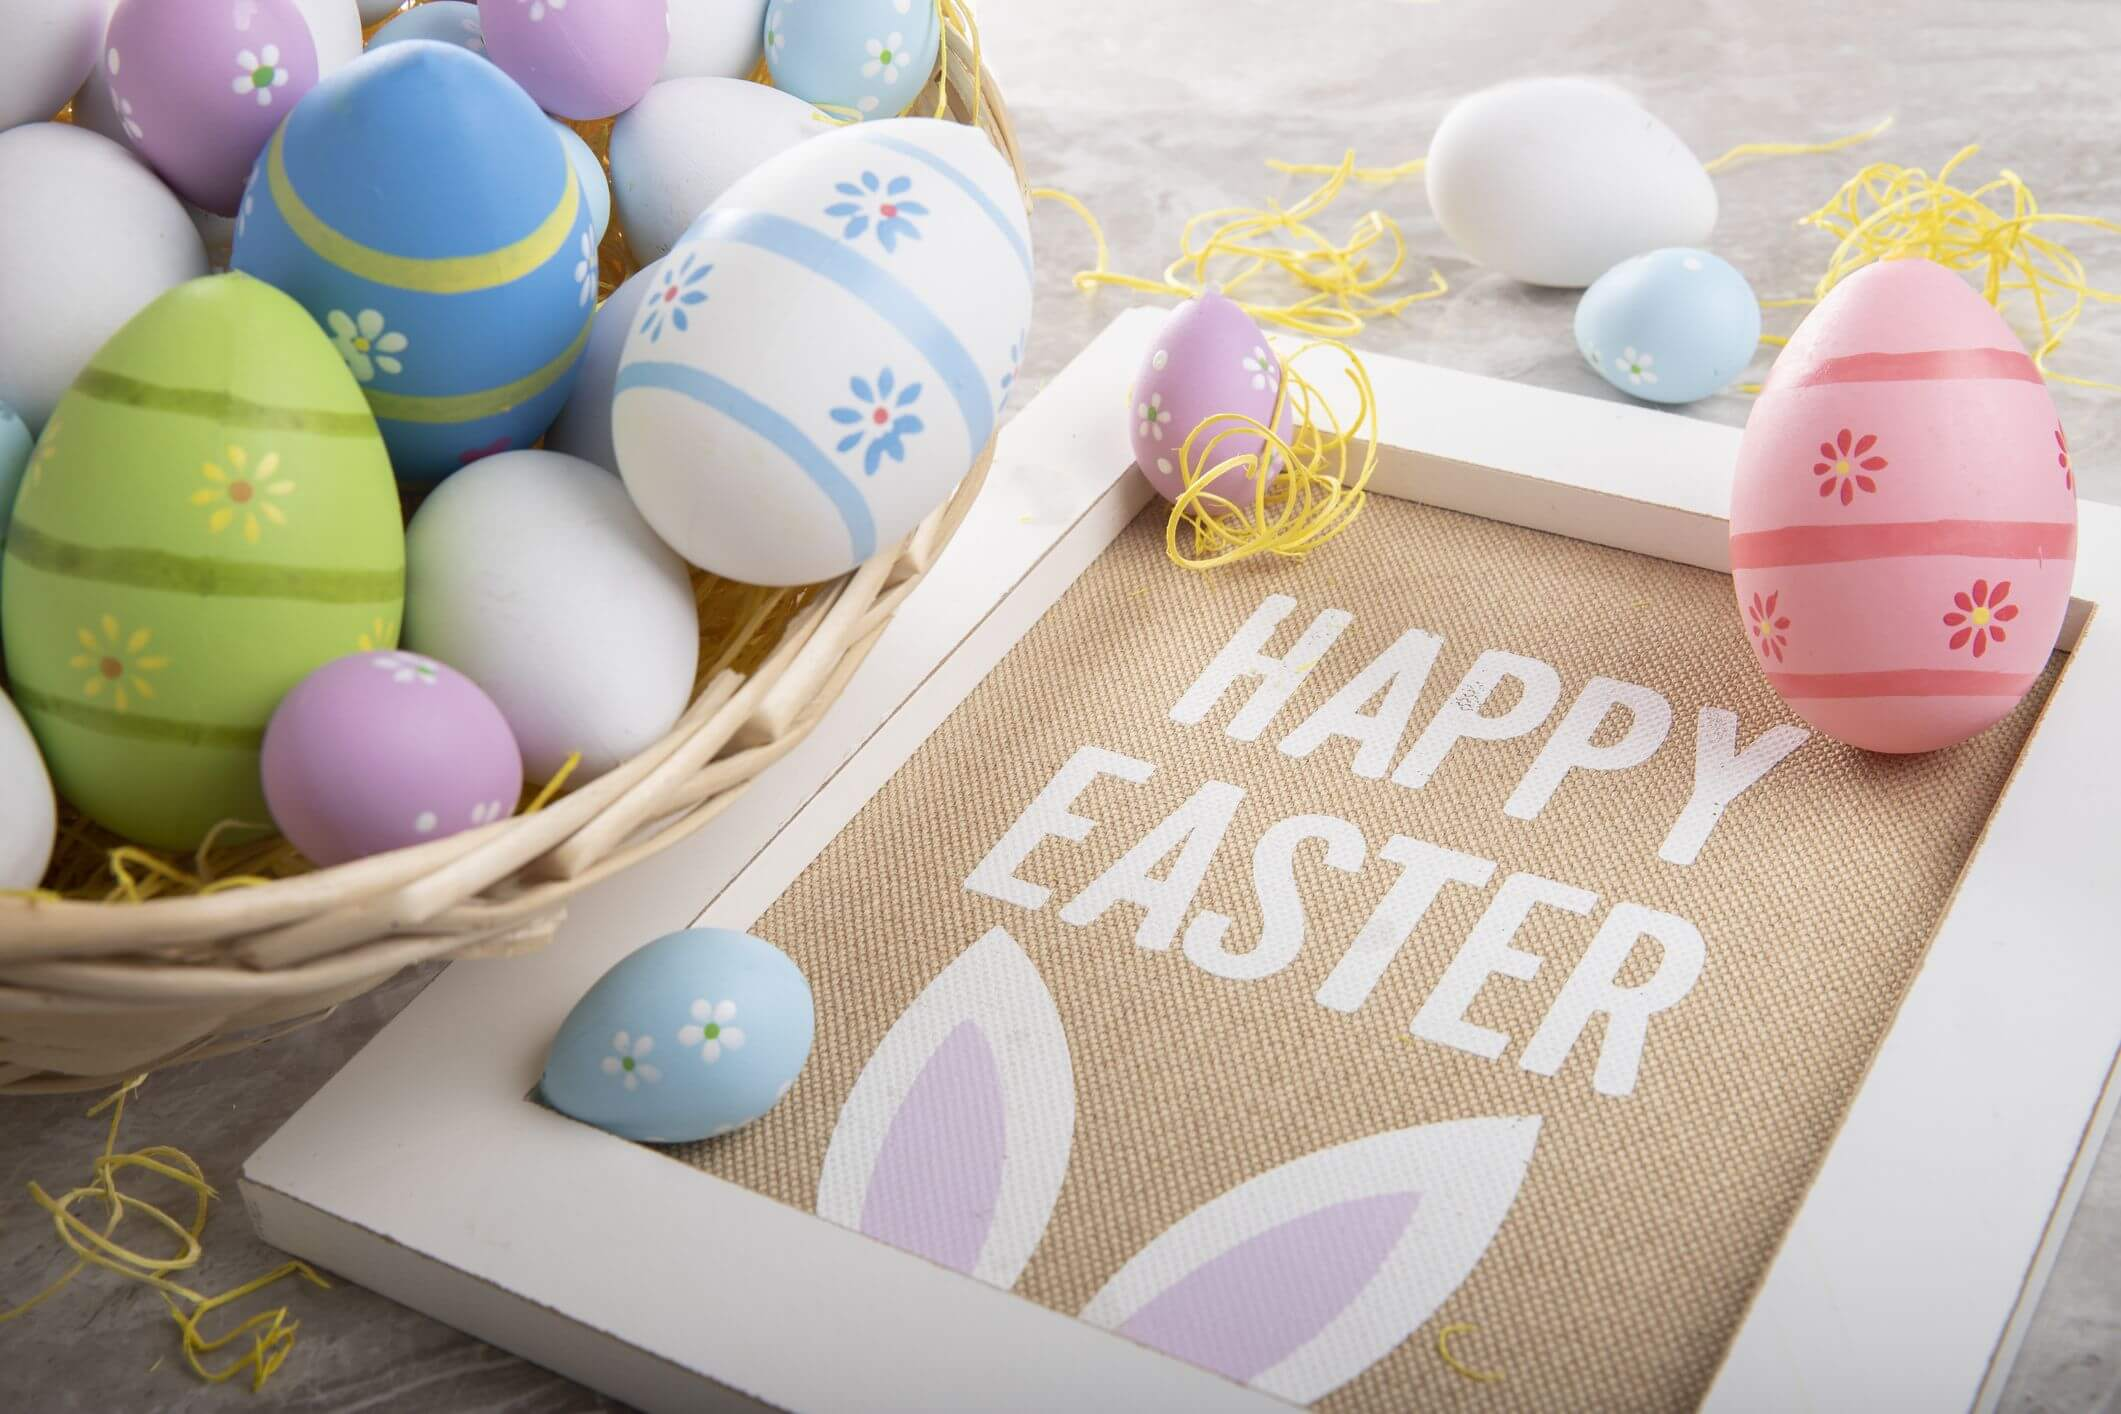 Easter Images 2021